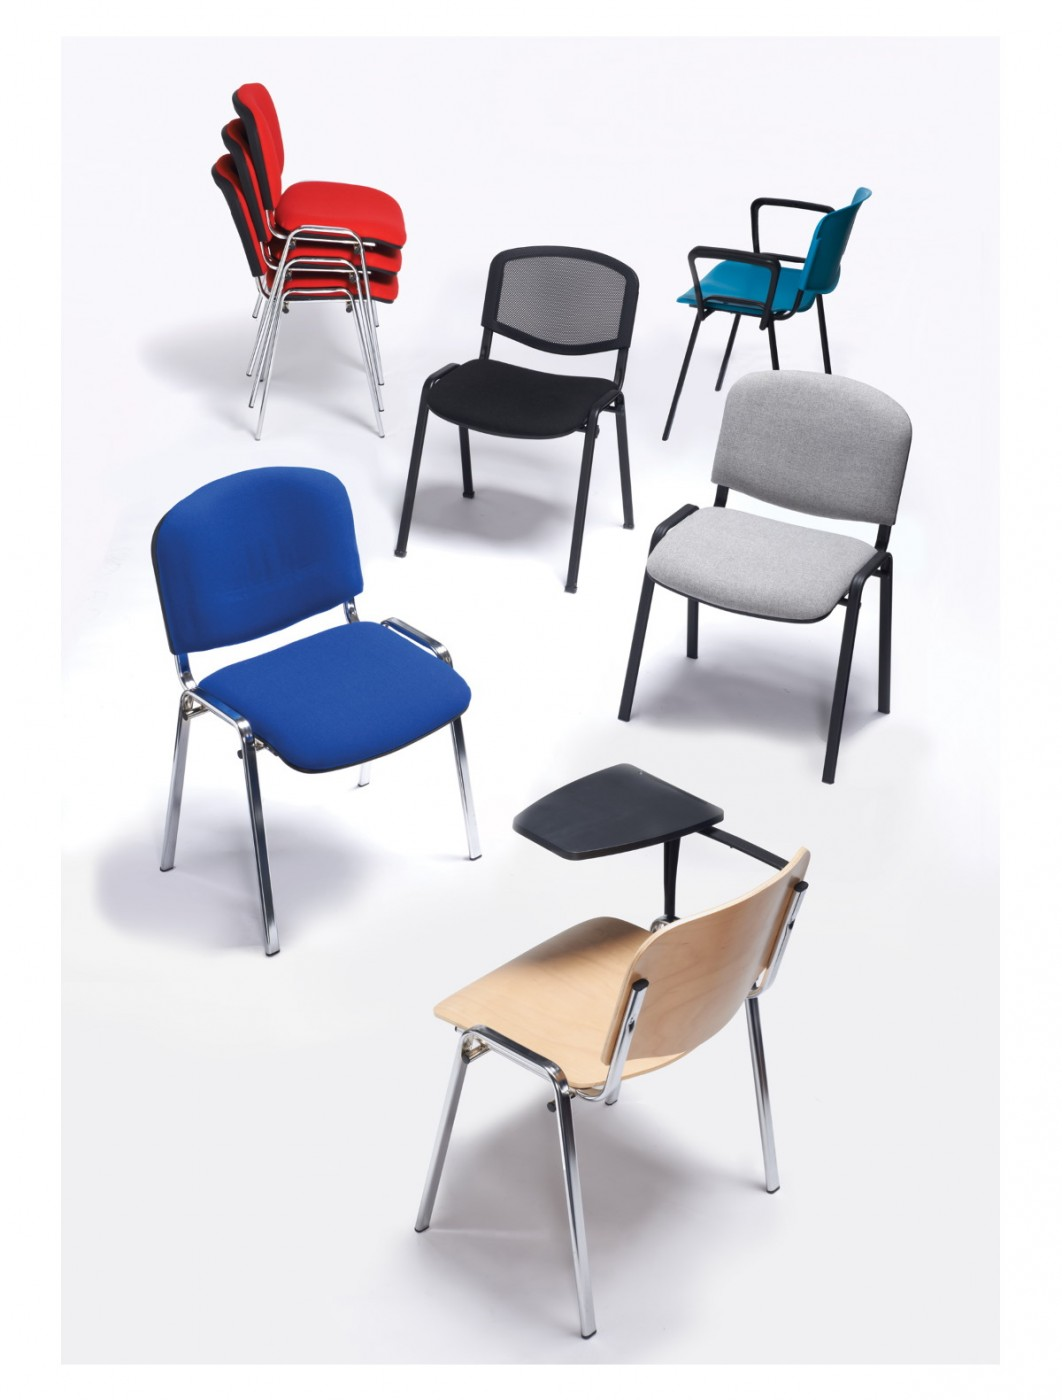 Stackable Meeting Room Seat - 4 Pack Taurus TAU40006 BOXTAU6